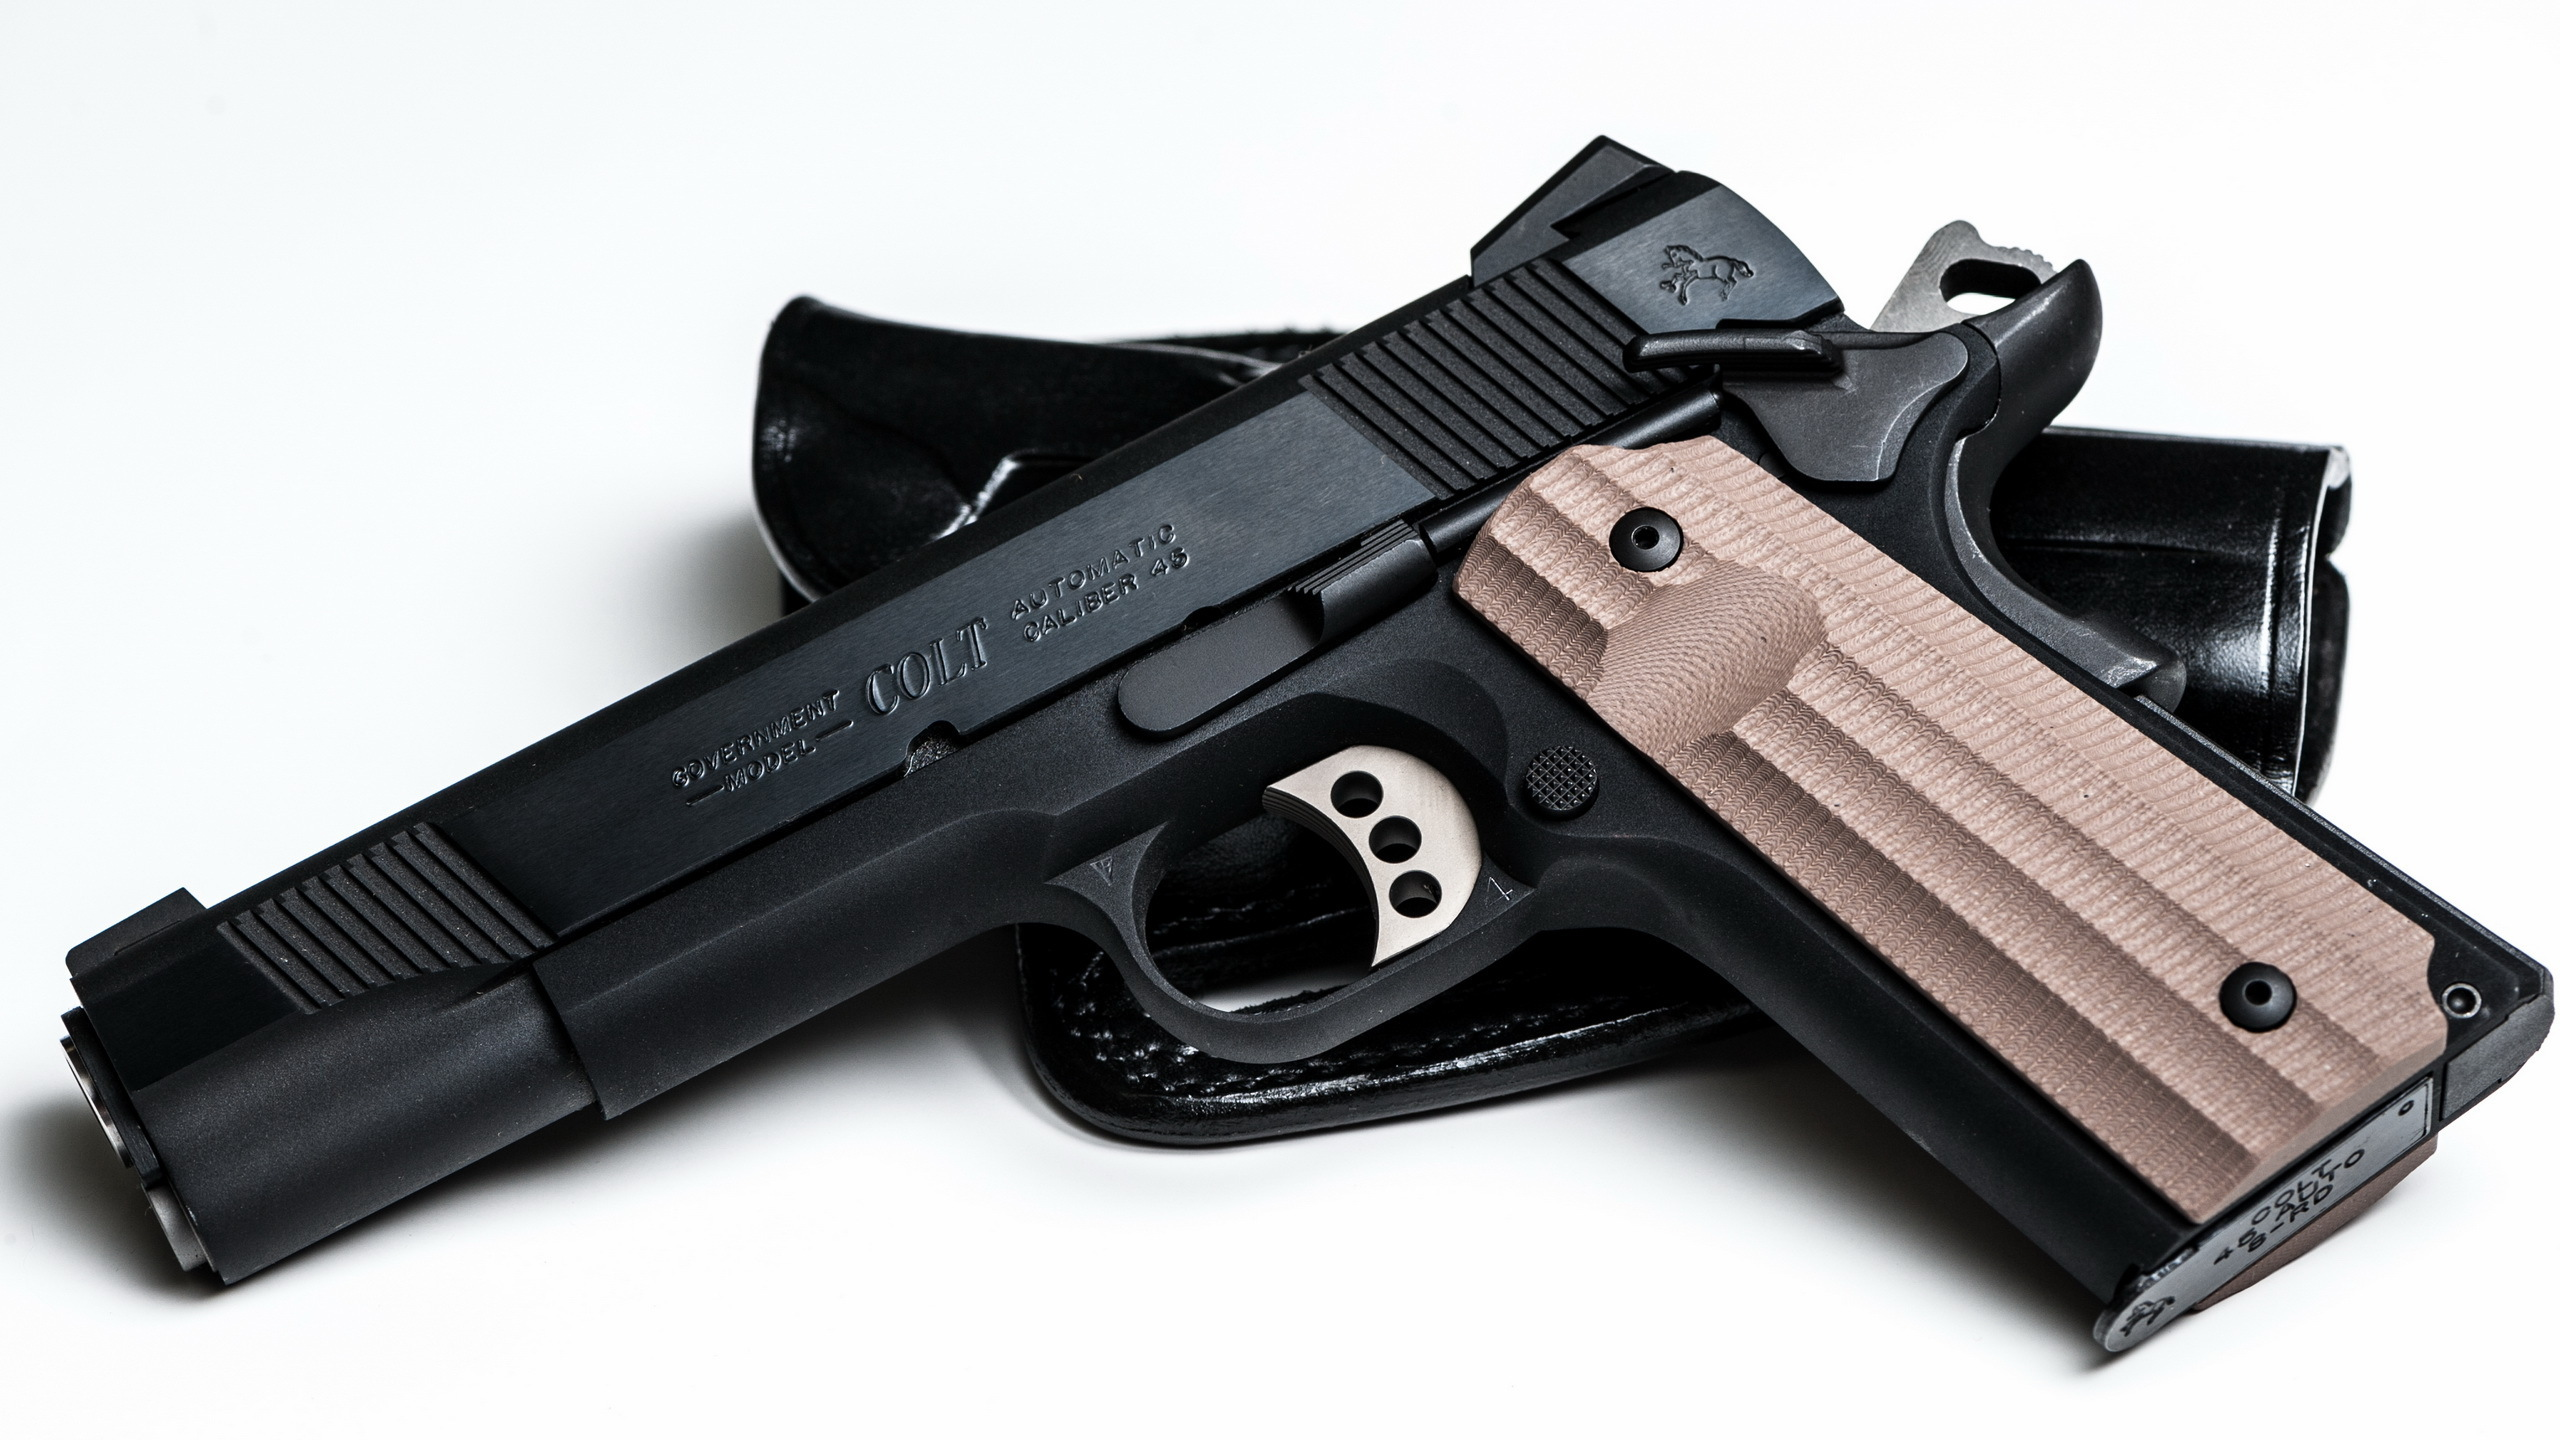 Weapons - Colt 1911 Wallpaper